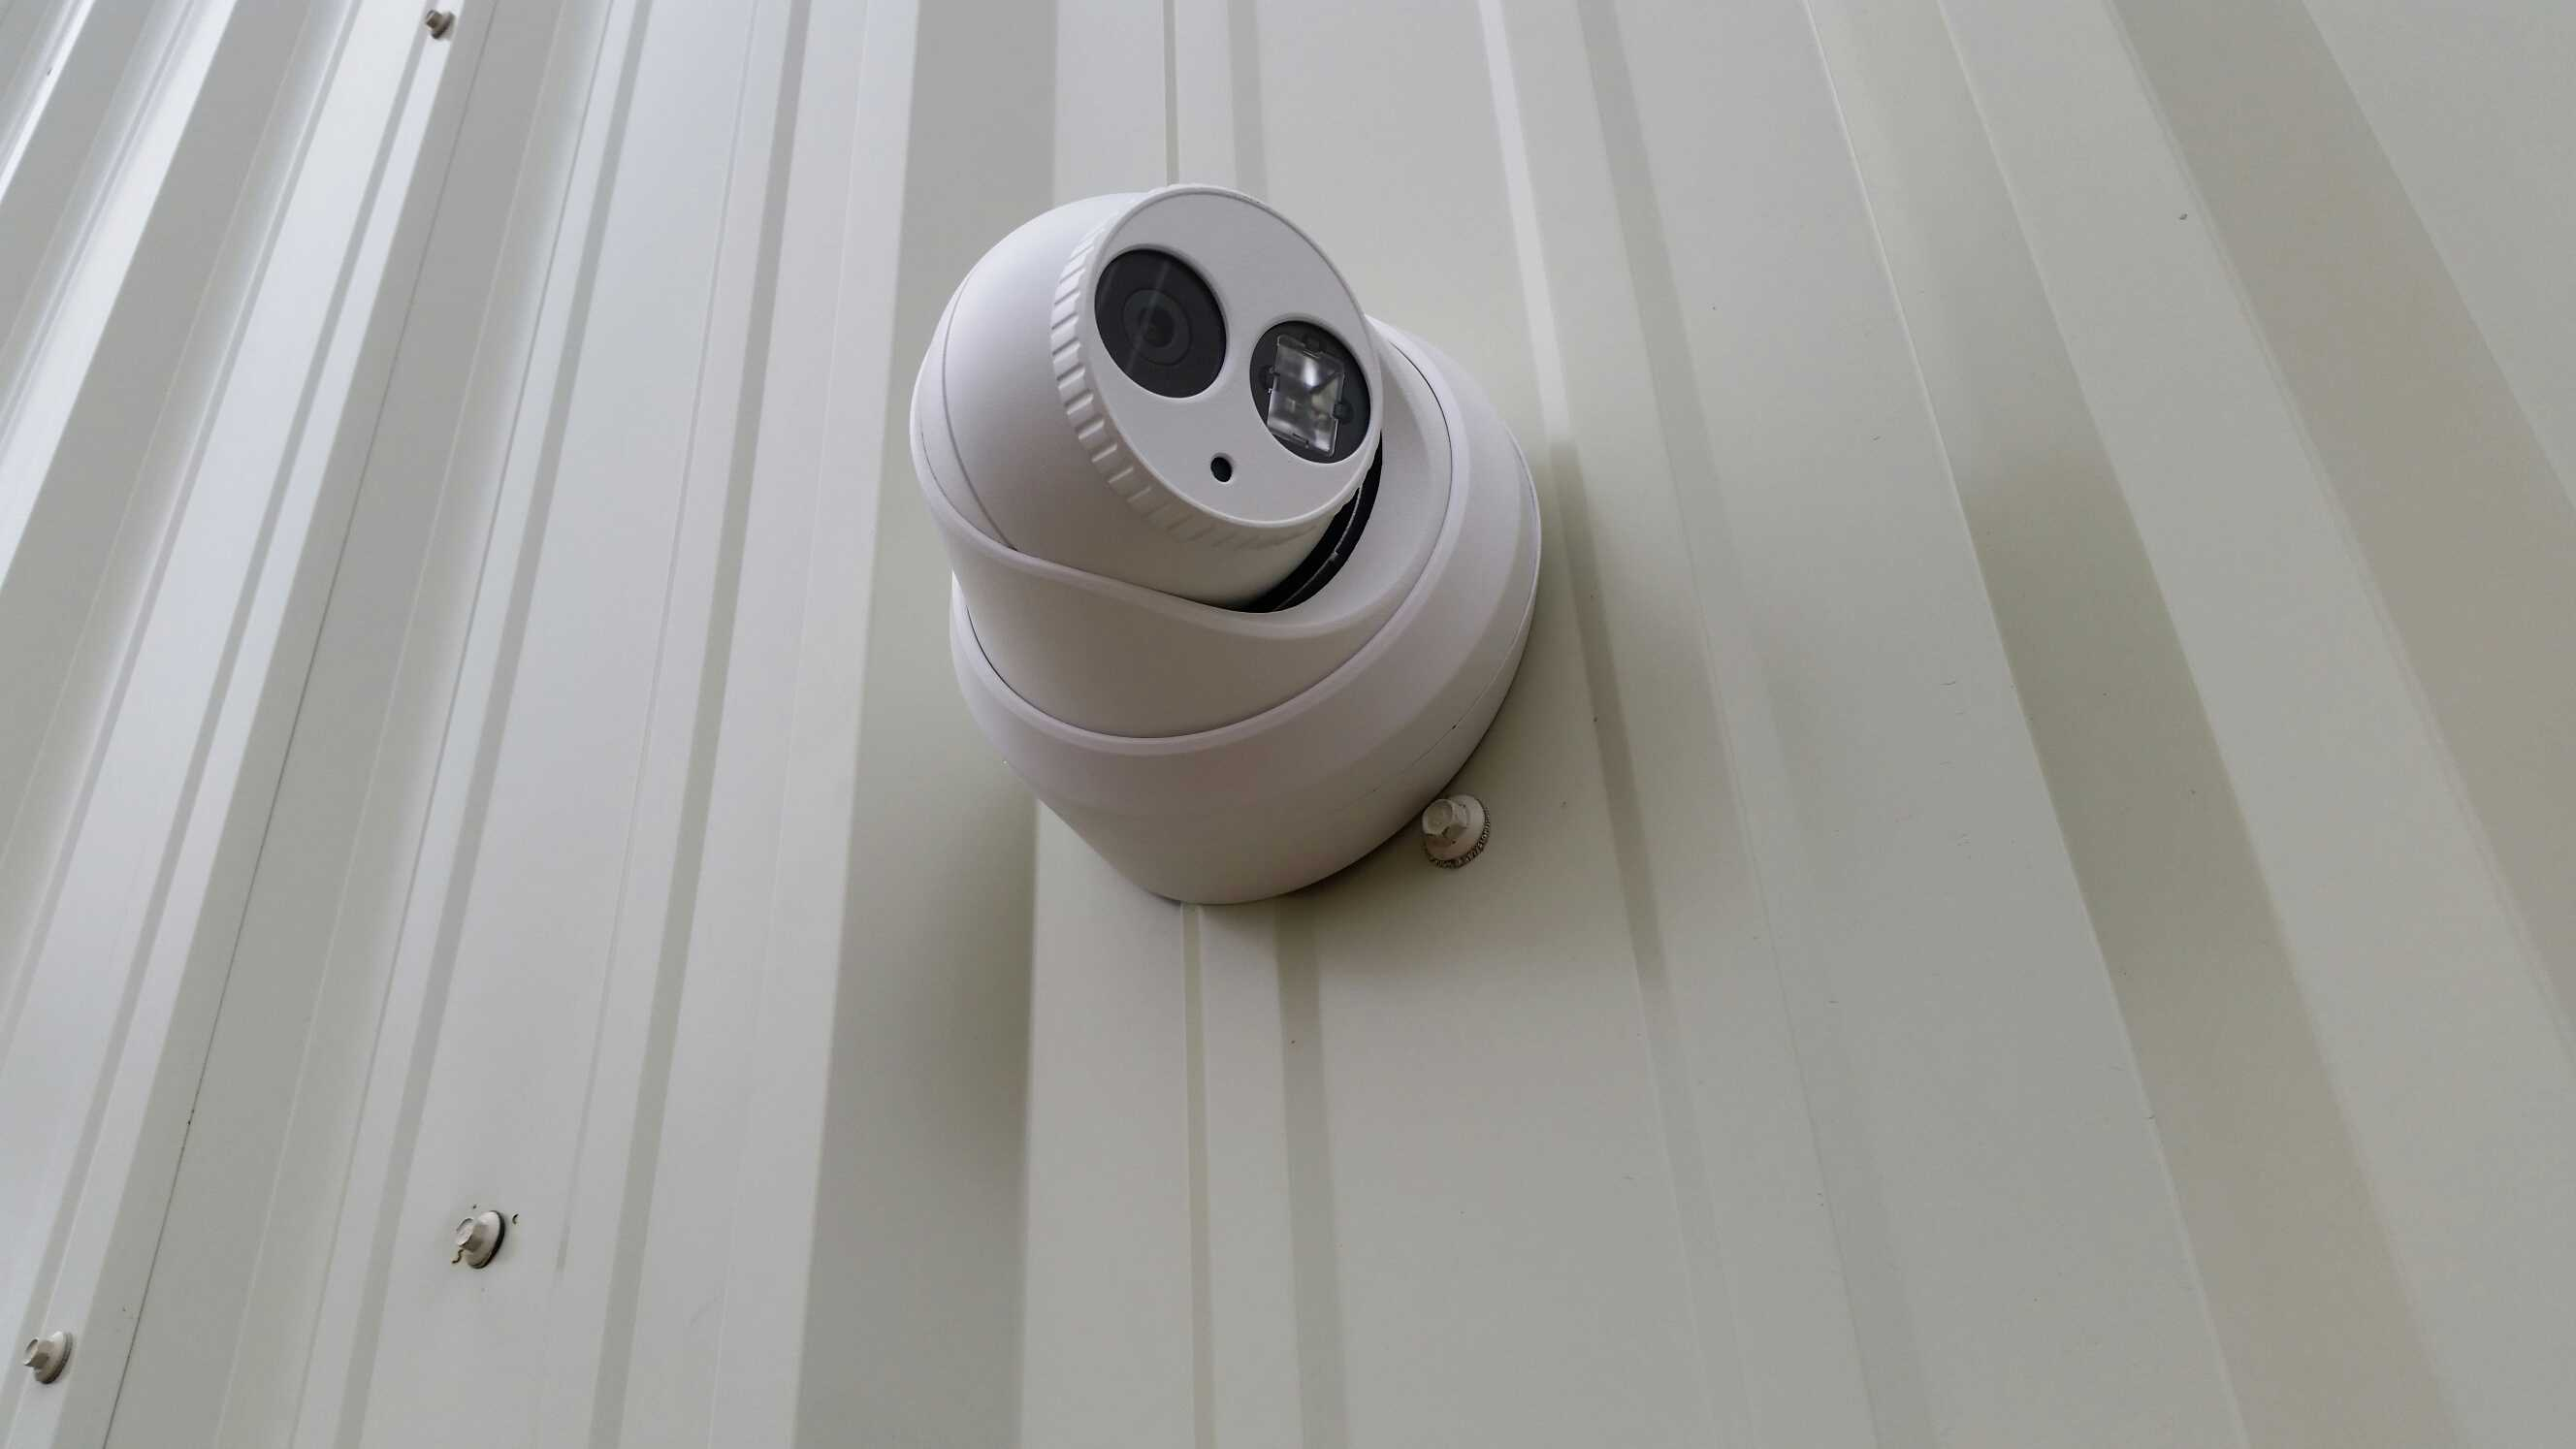 Gallery Action Security Cameras